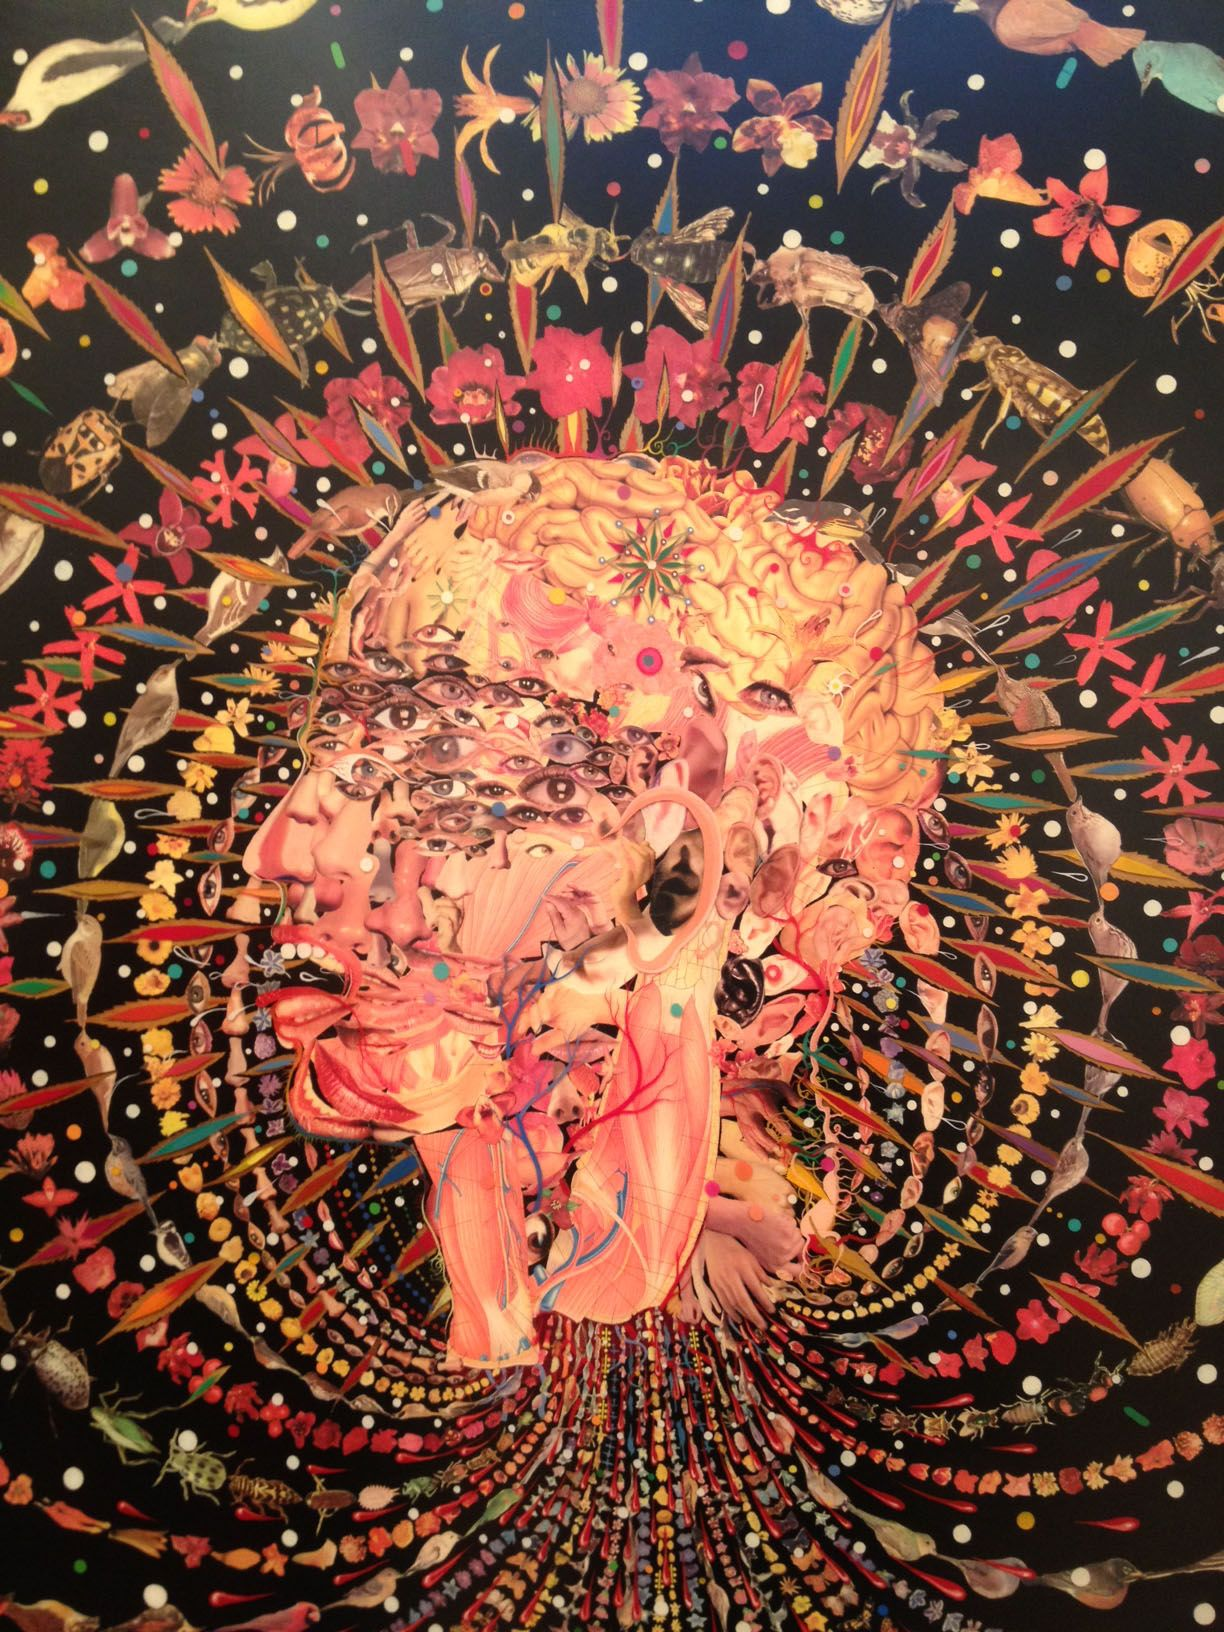 Fred Tomaselli at James Cohan Gallery, Dec '12.